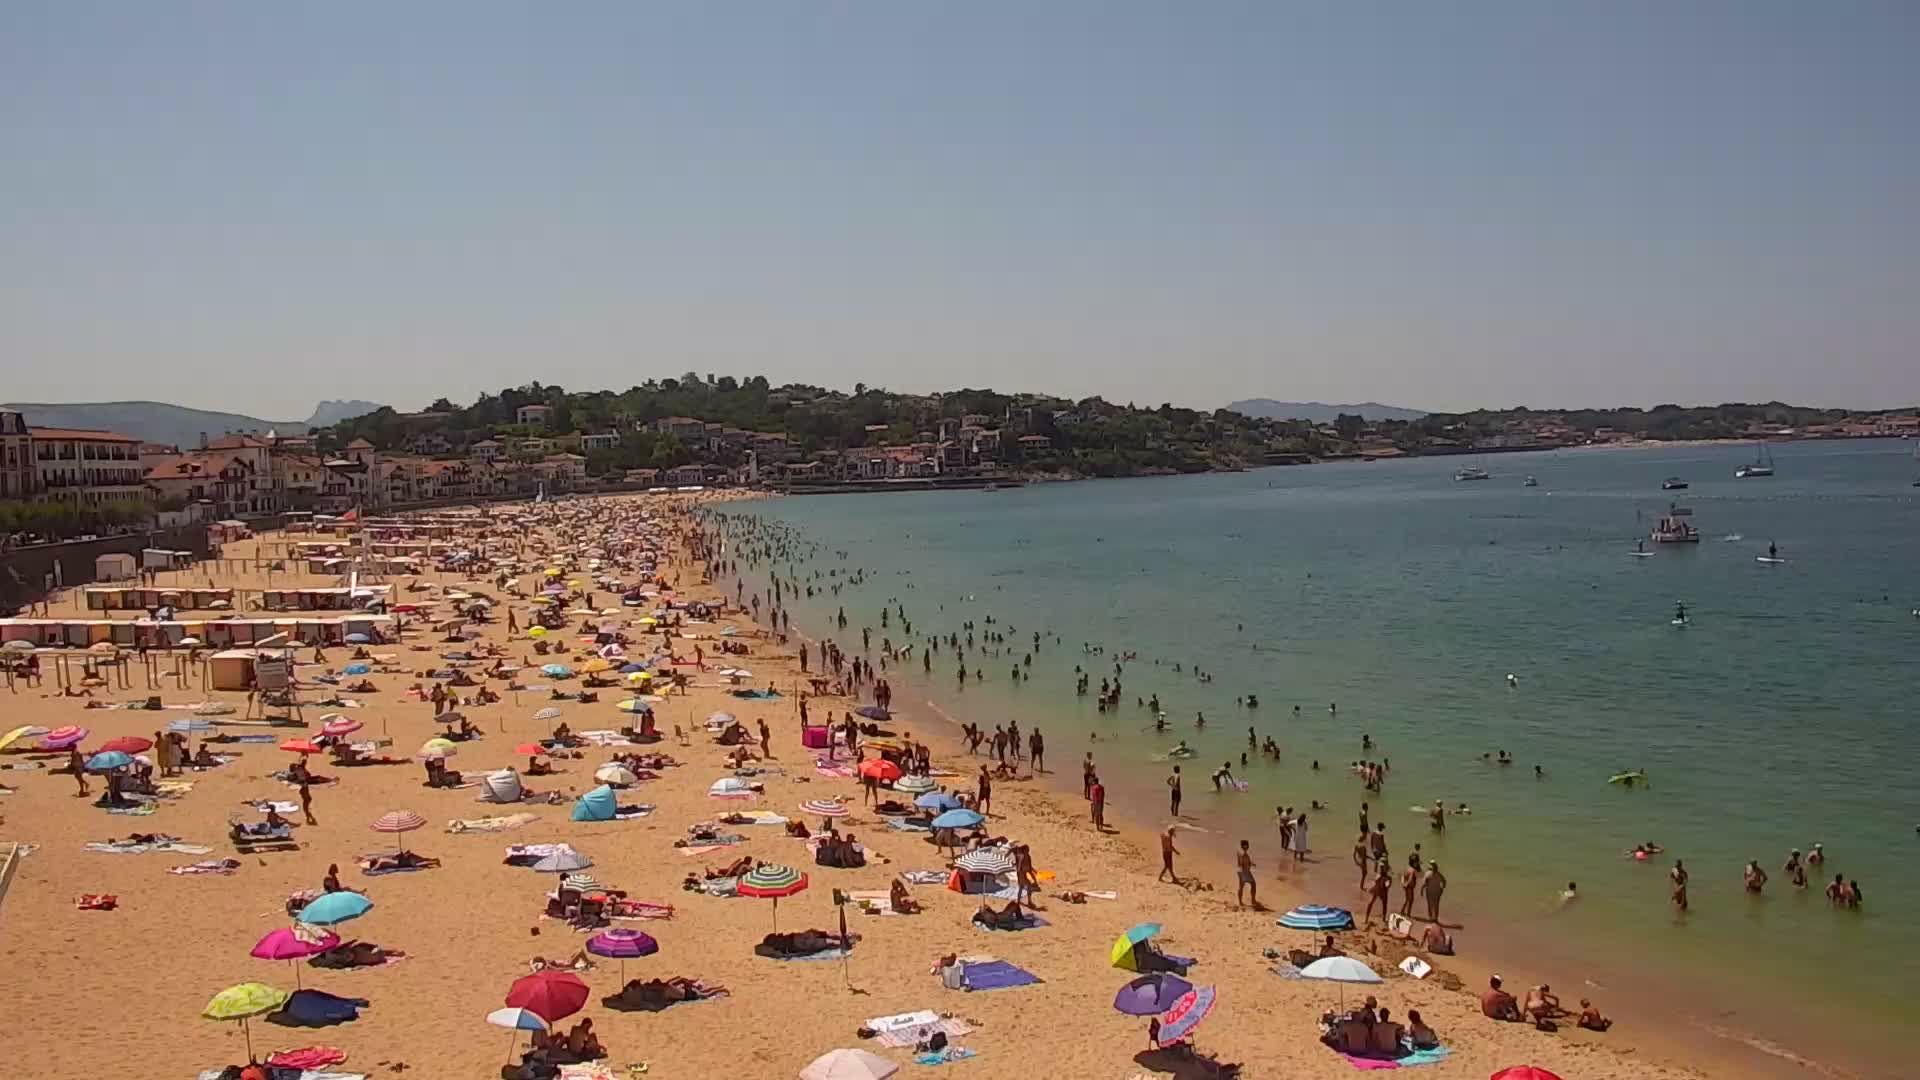 Live webcam saint jean de luz plage donibane - Weather forecast st jean pied de port france ...